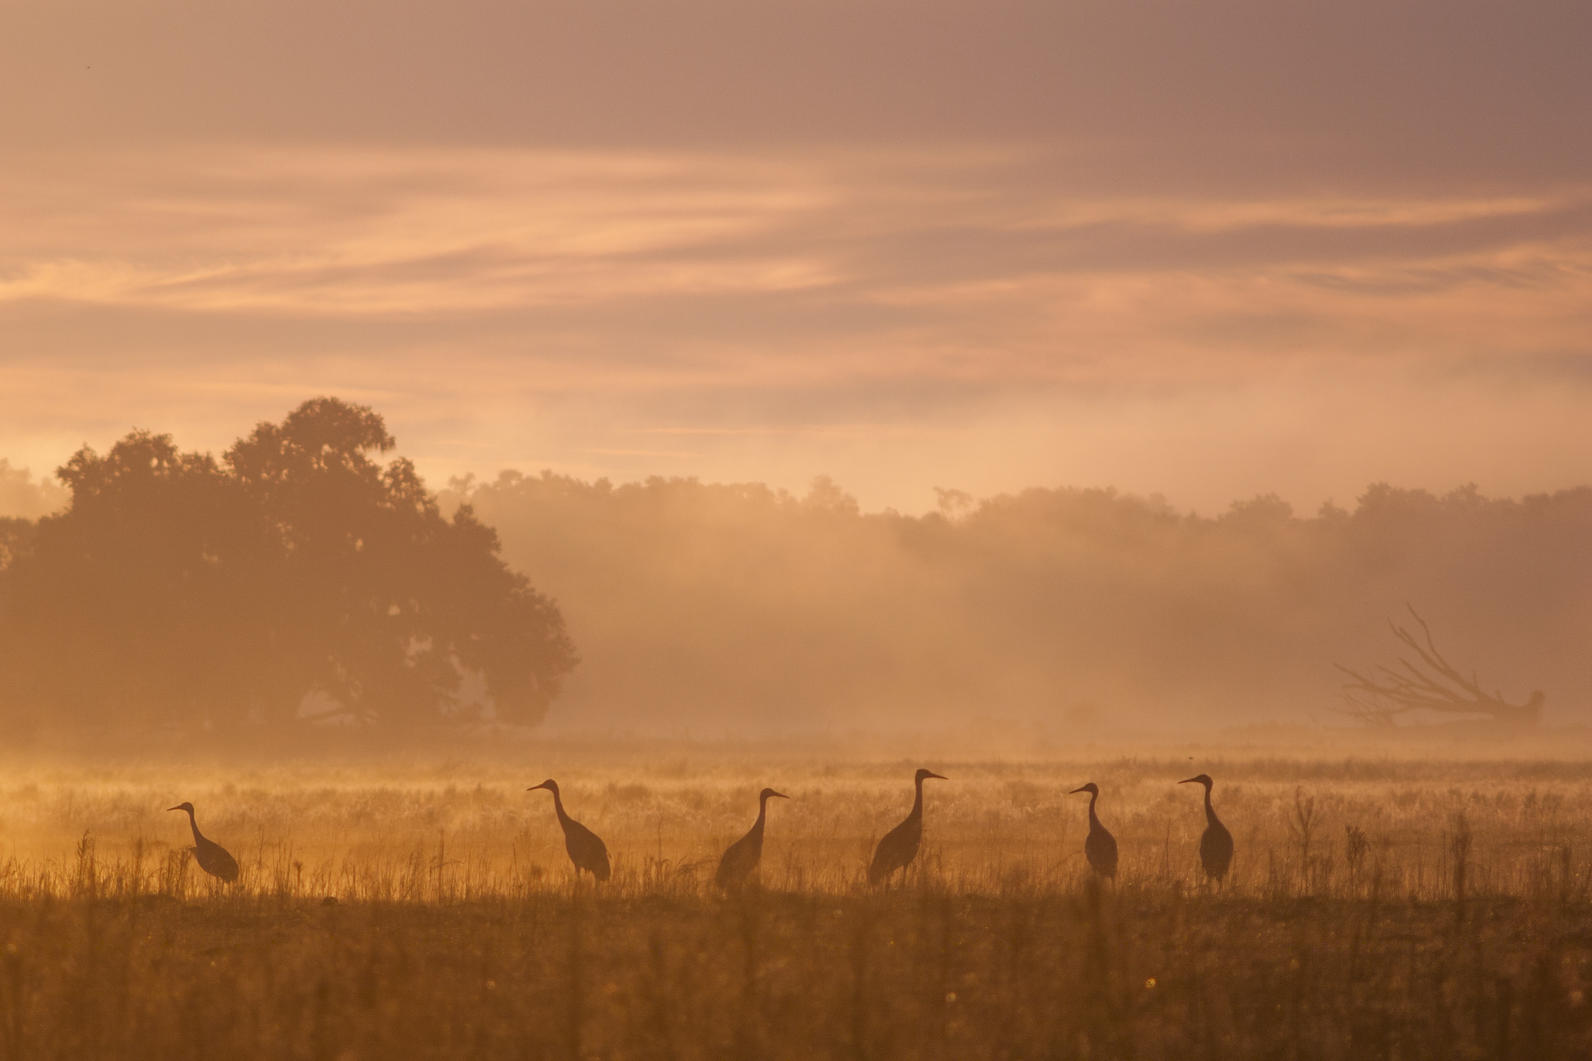 Sandhill Crane silhouettes at sunrise on Kanapaha Prairie.